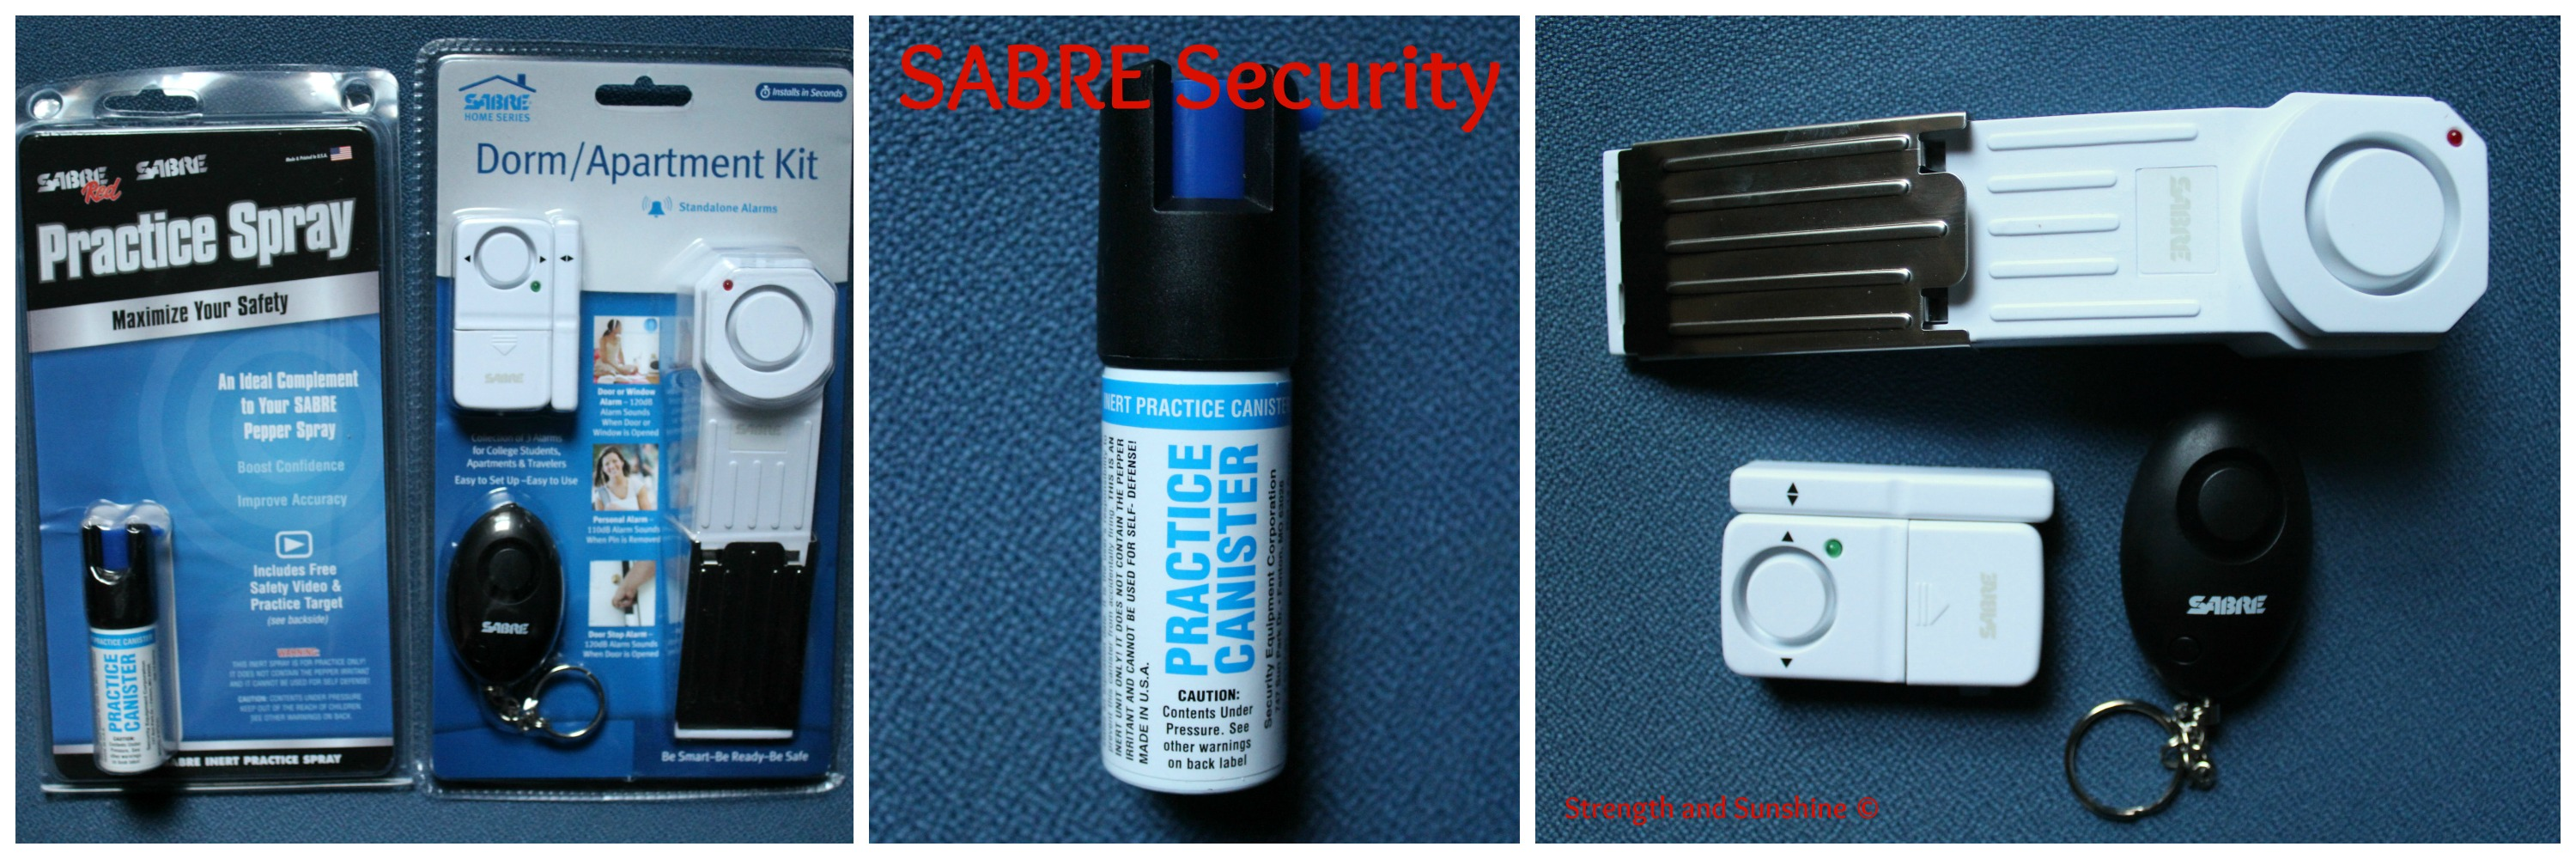 SABRE Security | Strength and Sunshine